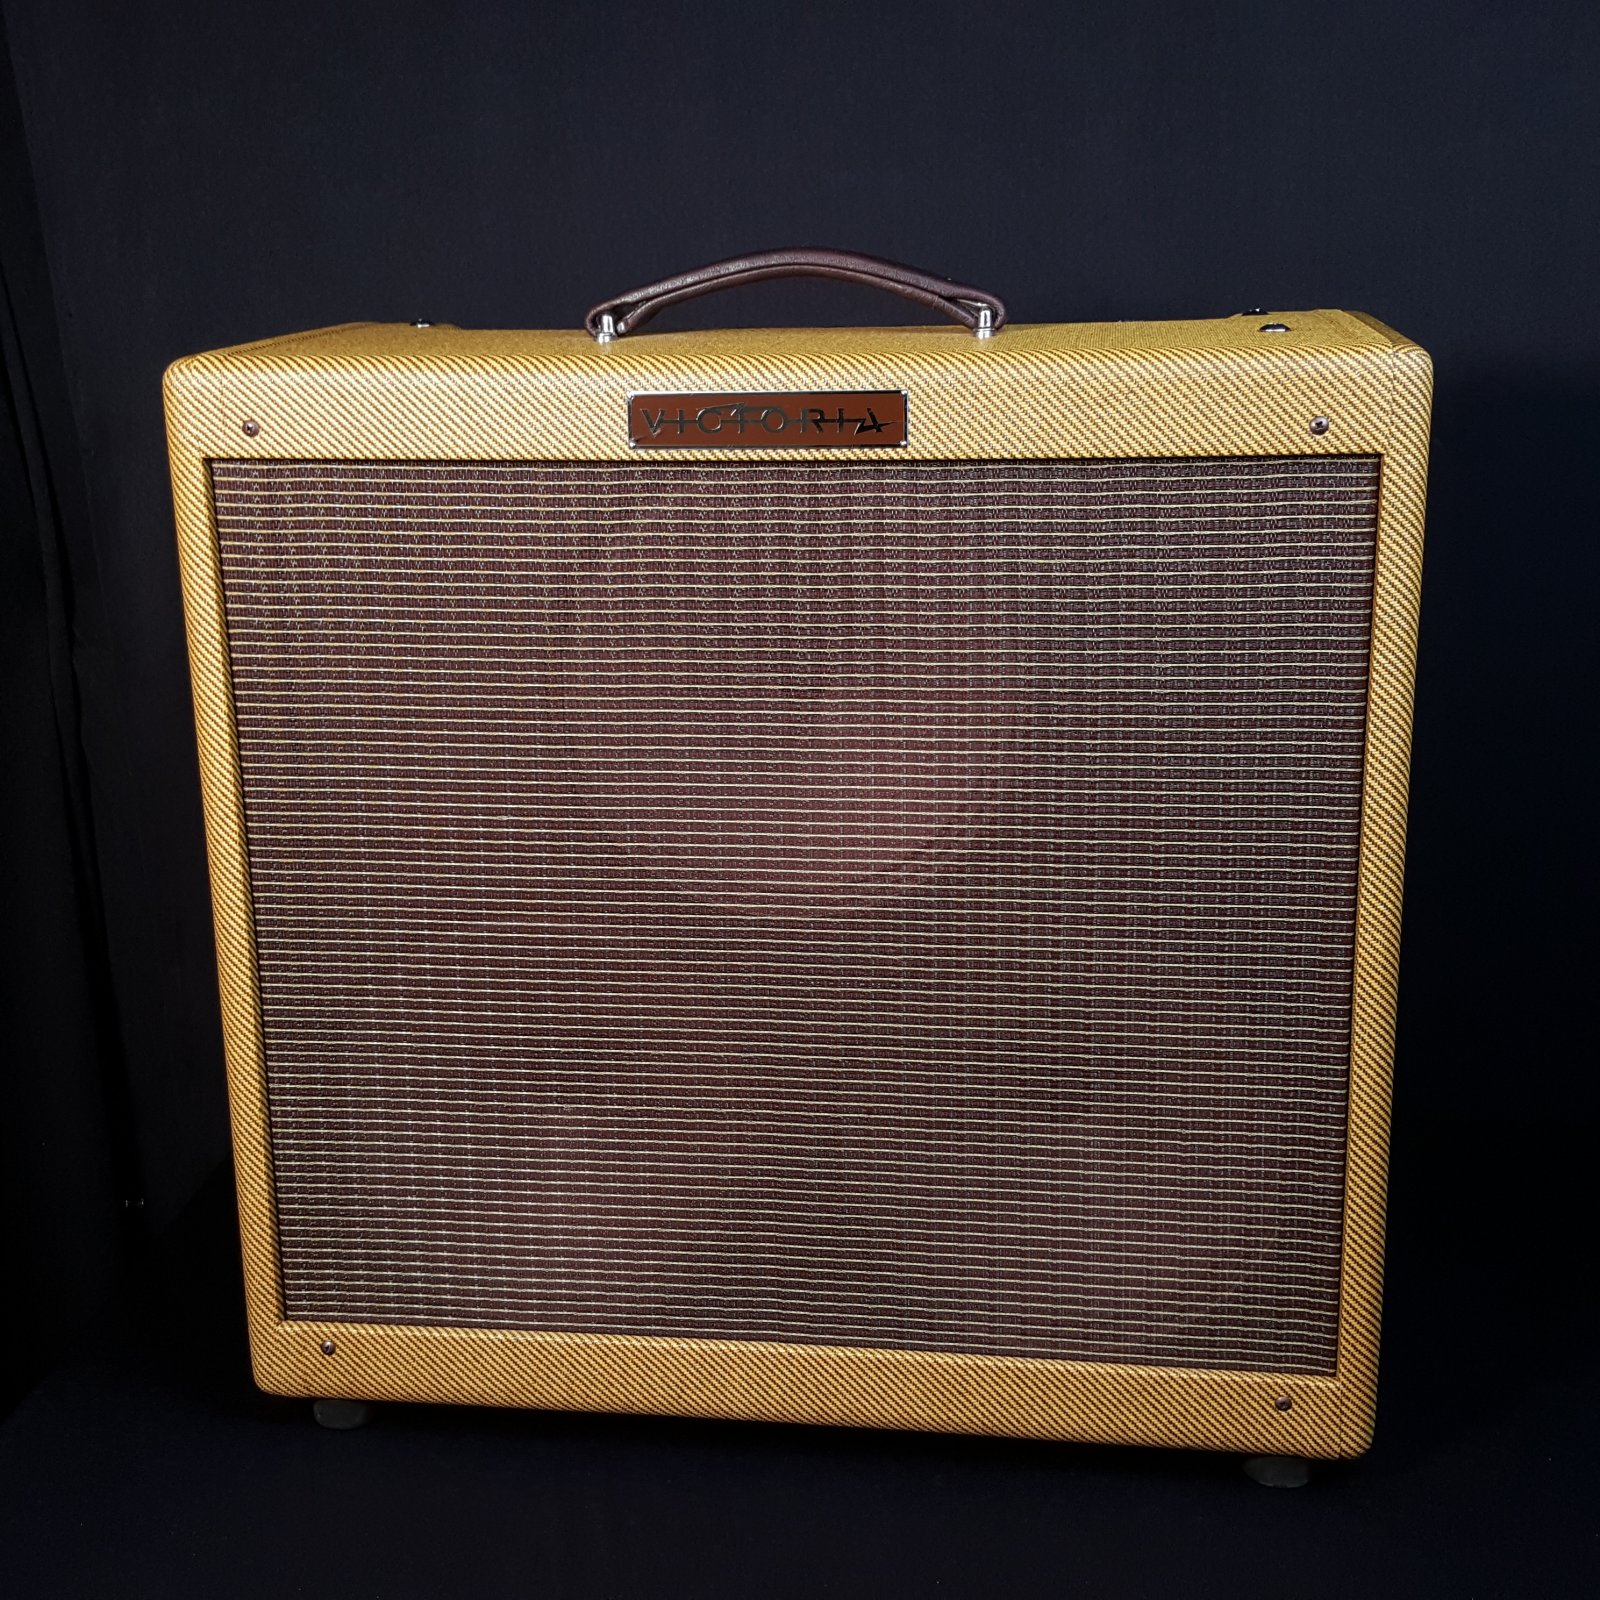 Used Victoria 35310-T Tweed Classic 3x10 Electric Guitar Amplifier w/Cover